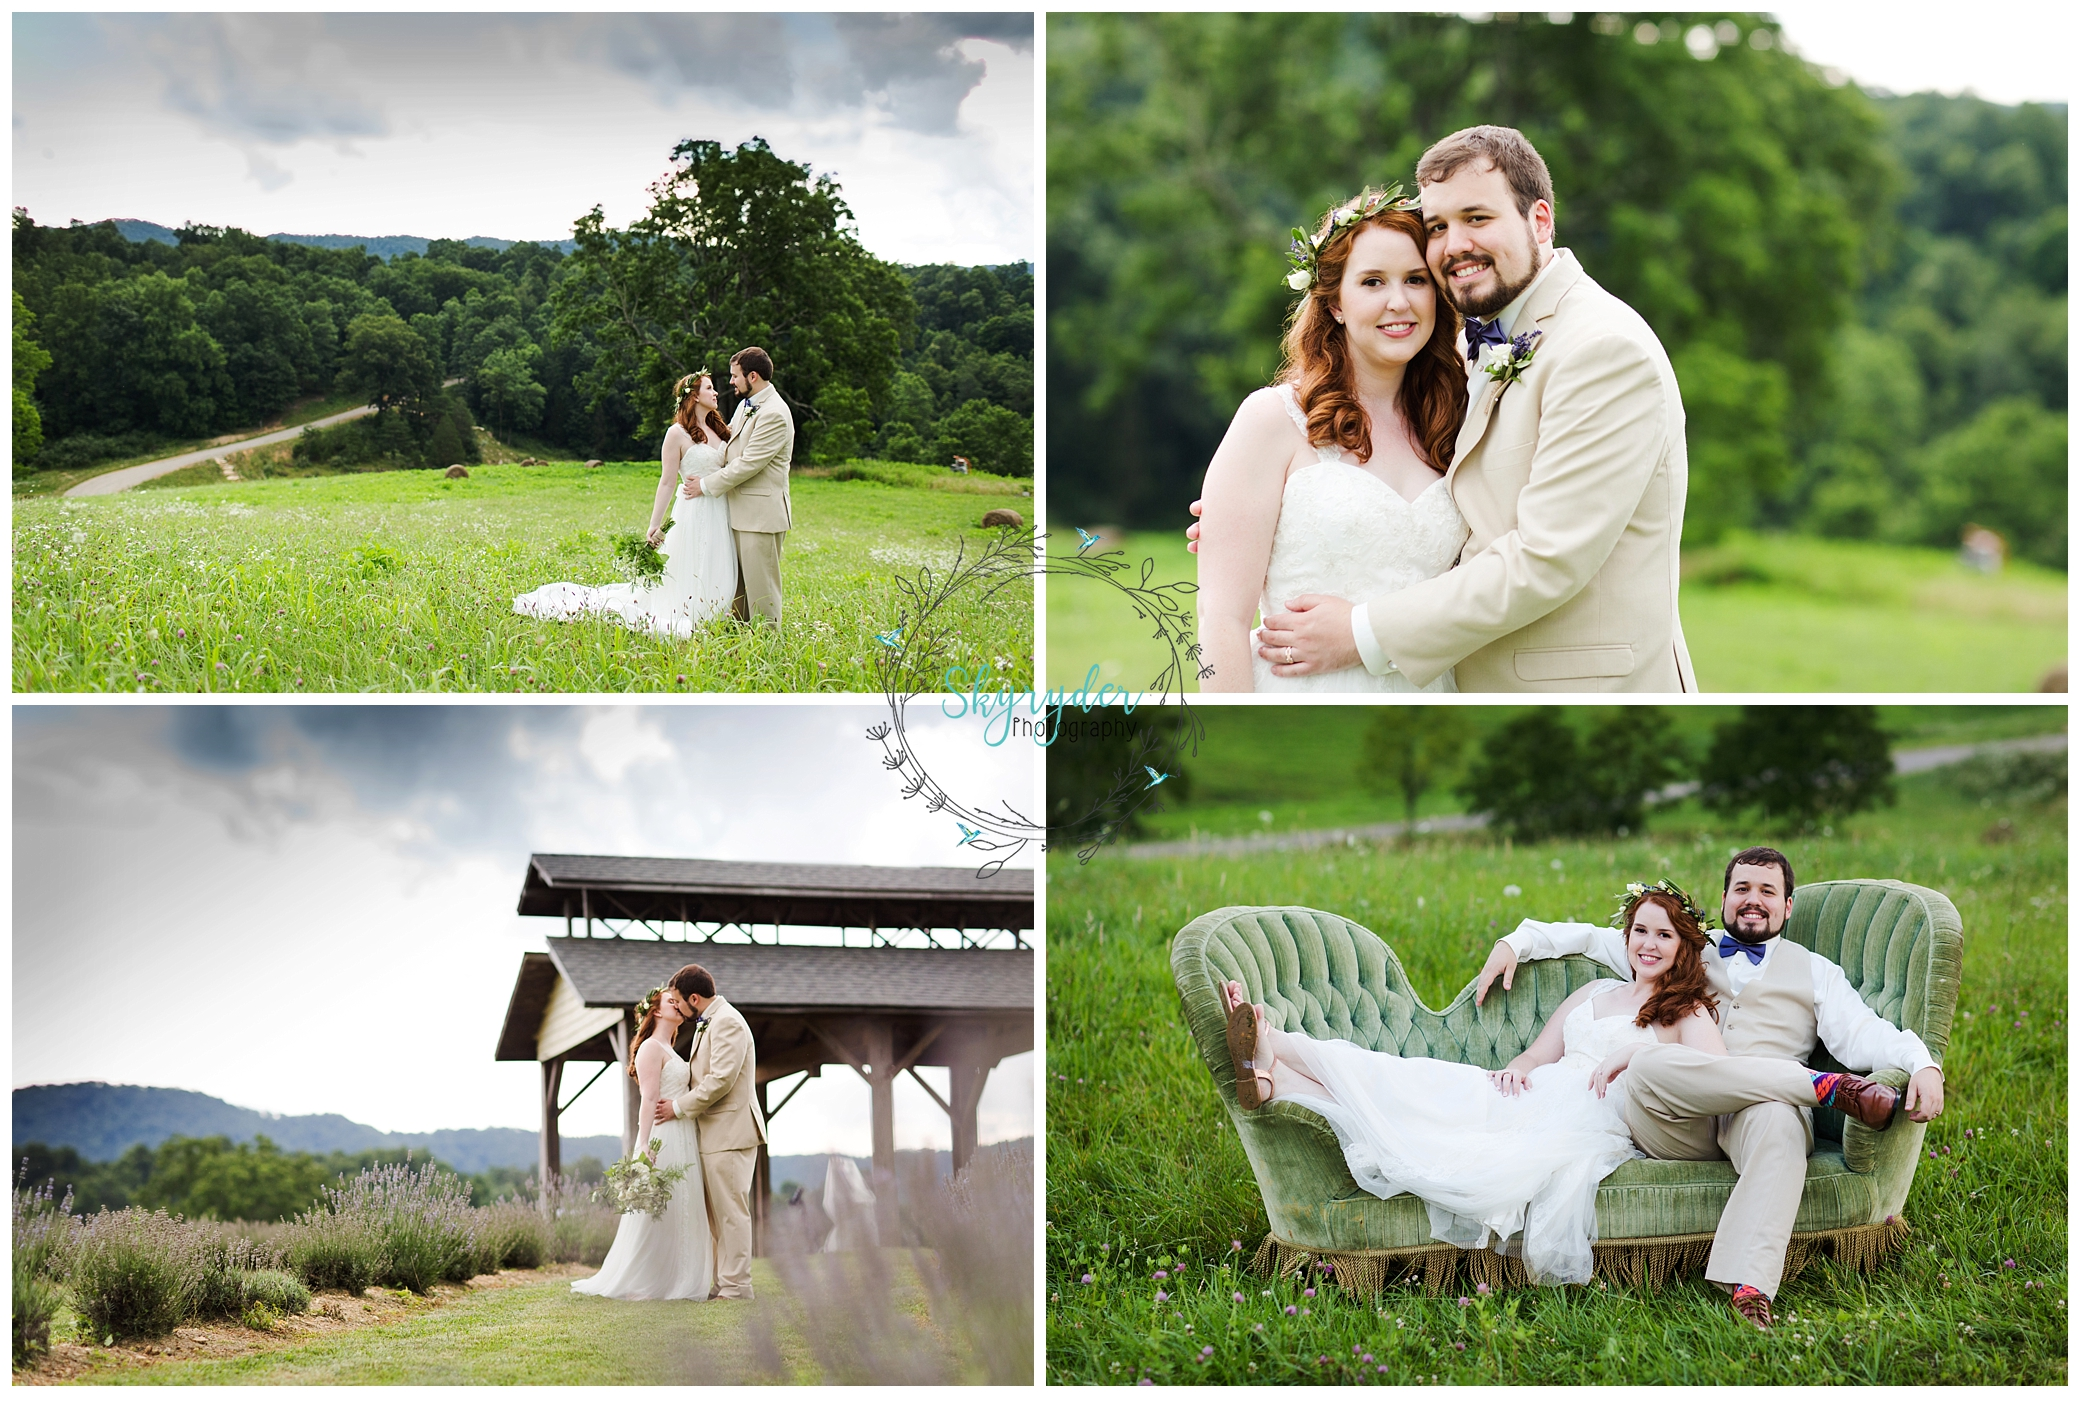 blacksburg wedding photographer skyryder